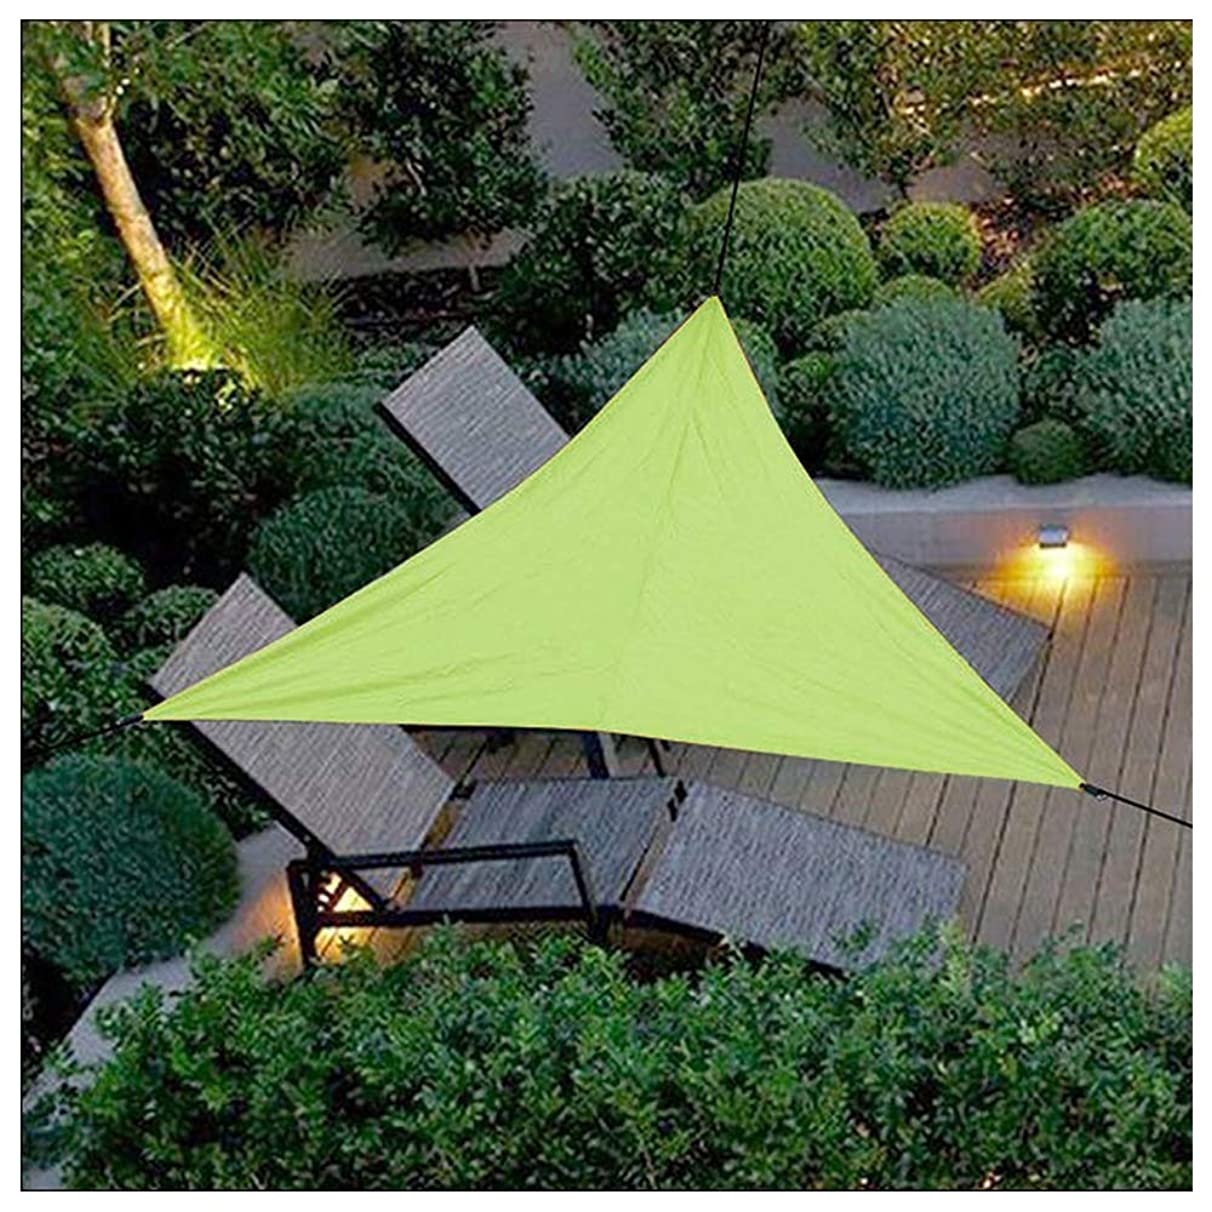 Awnings 2'x 2'x 2' Garden Waterproof Mildew Shade Sail Triangle 95% Uv Protection for Porch Deck Swimming Pool Car Port Our Custom Size